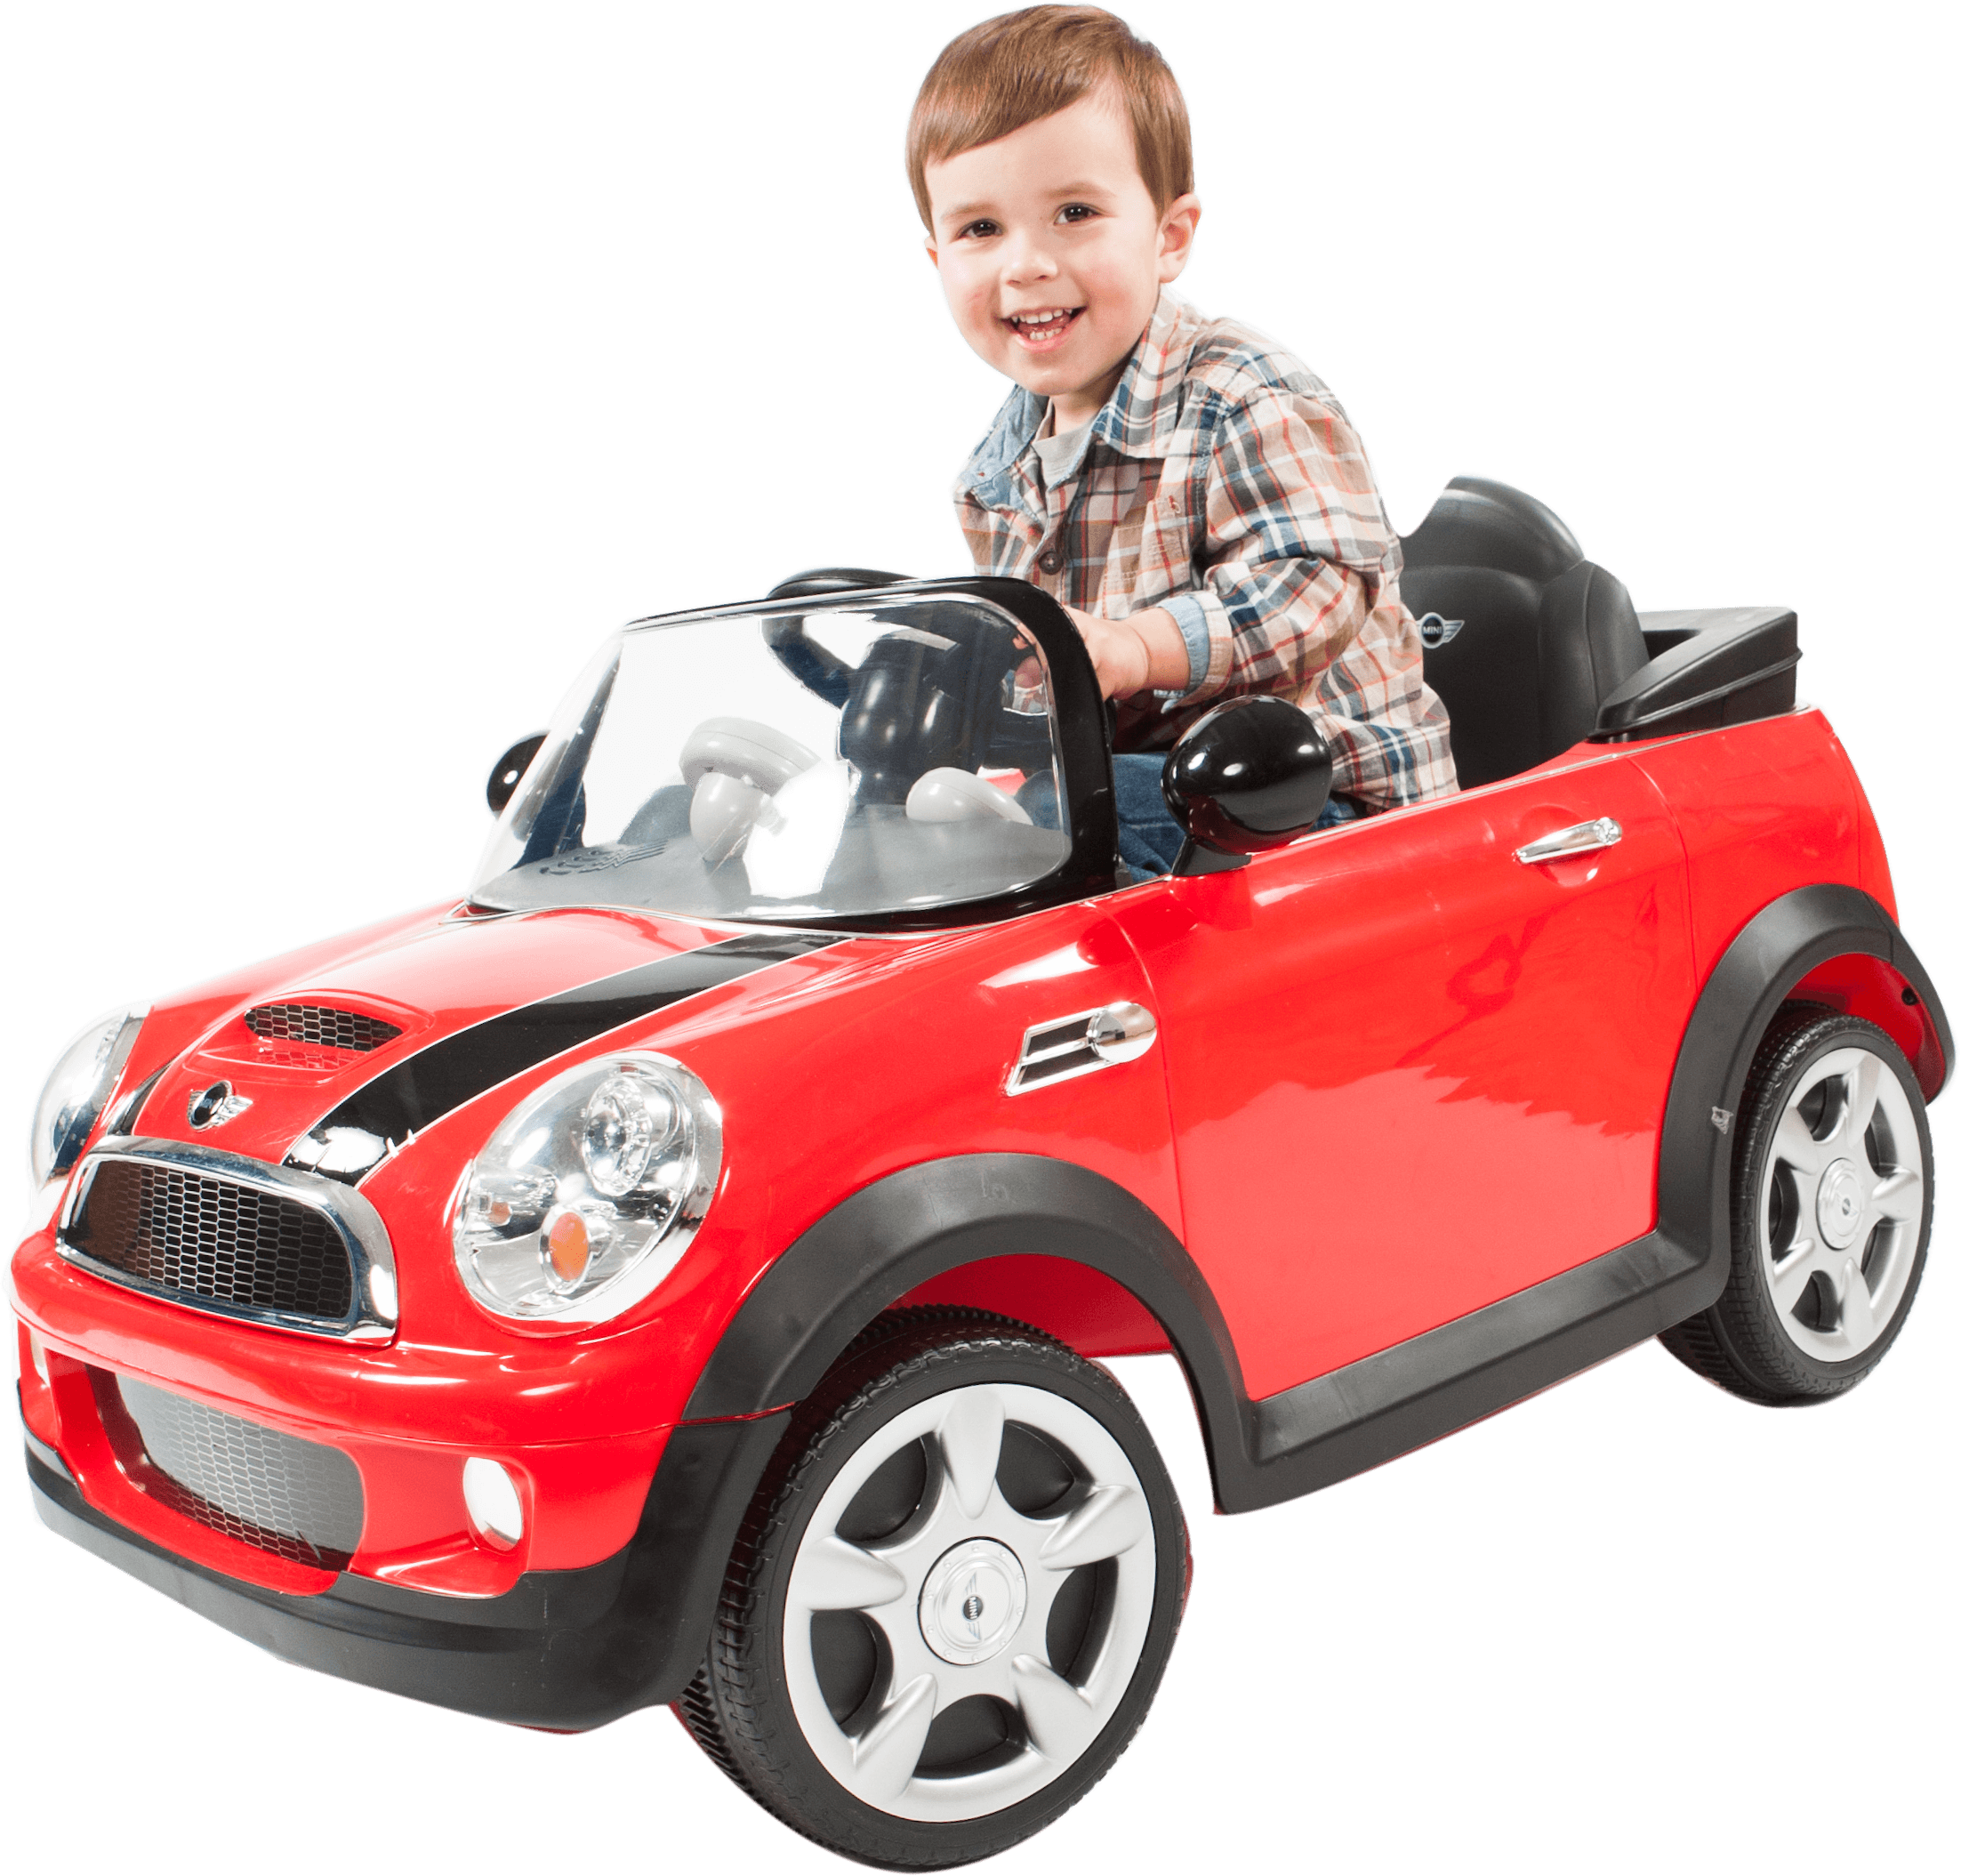 Rollplay 6 Volt MINI Cooper Ride On Toy, Battery-Powered Kid's Ride On Car - Red